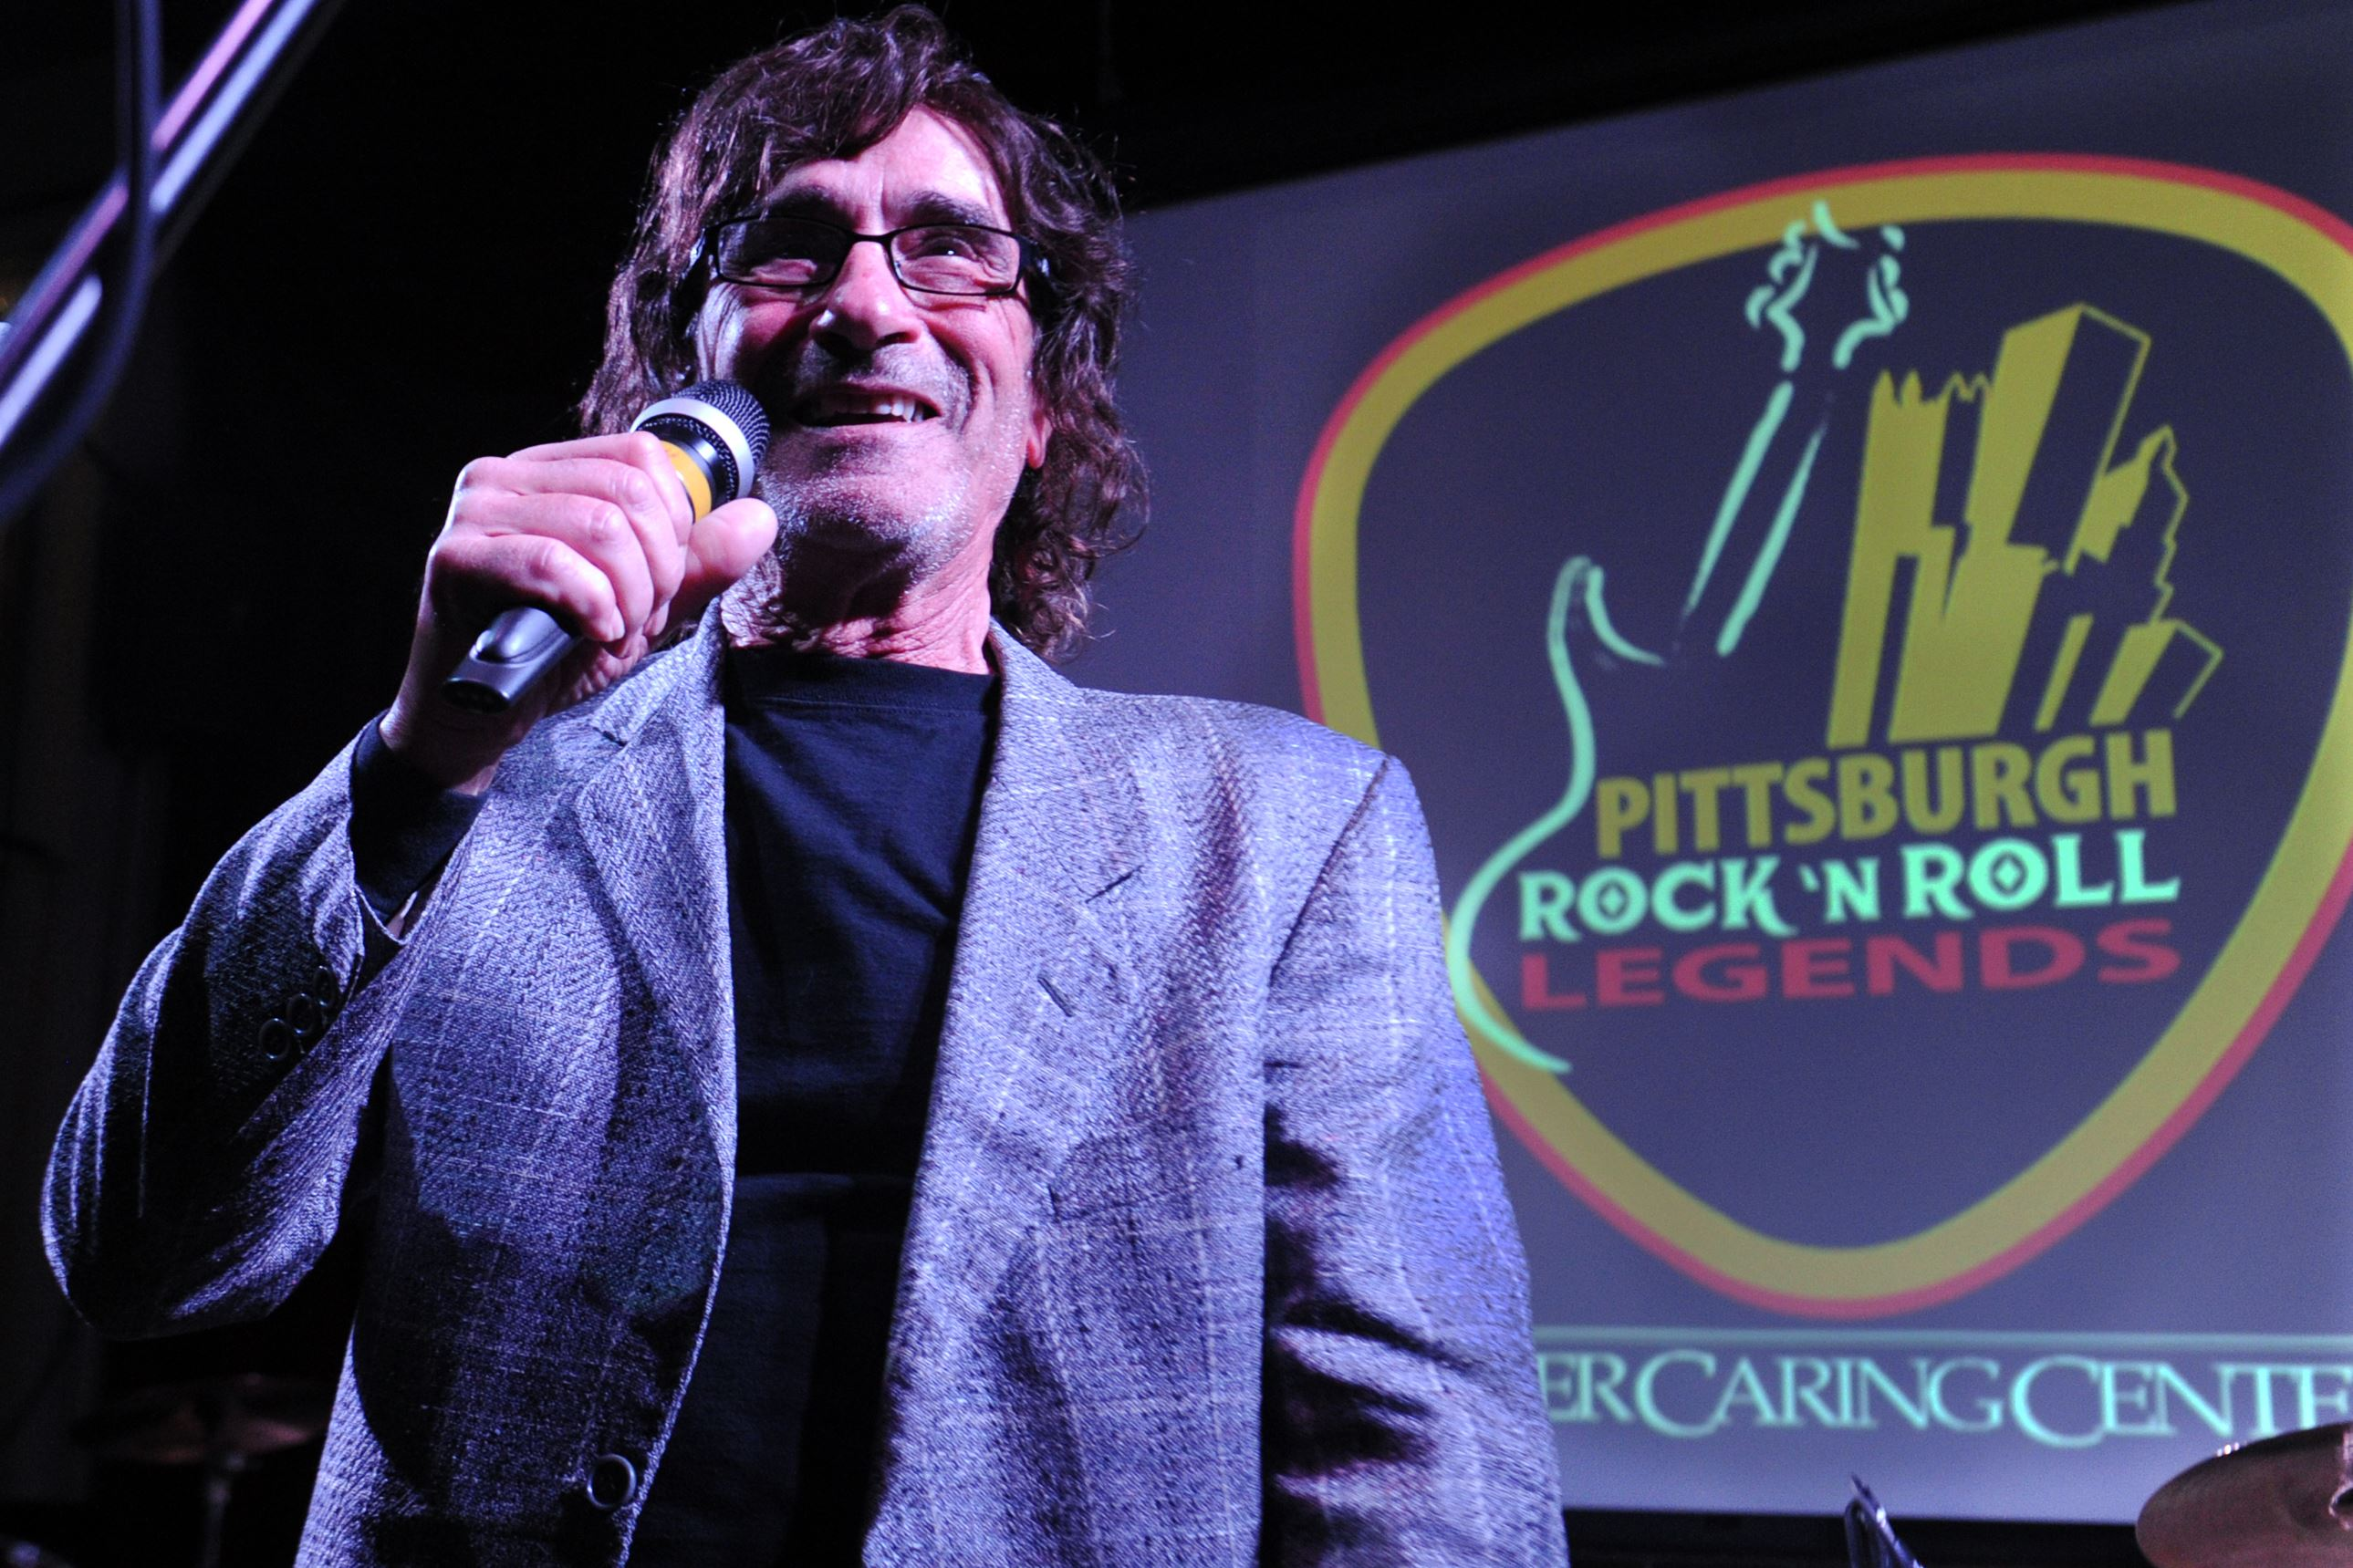 Donnie Iris, Pittsburgh Rock 'n Roll Legends